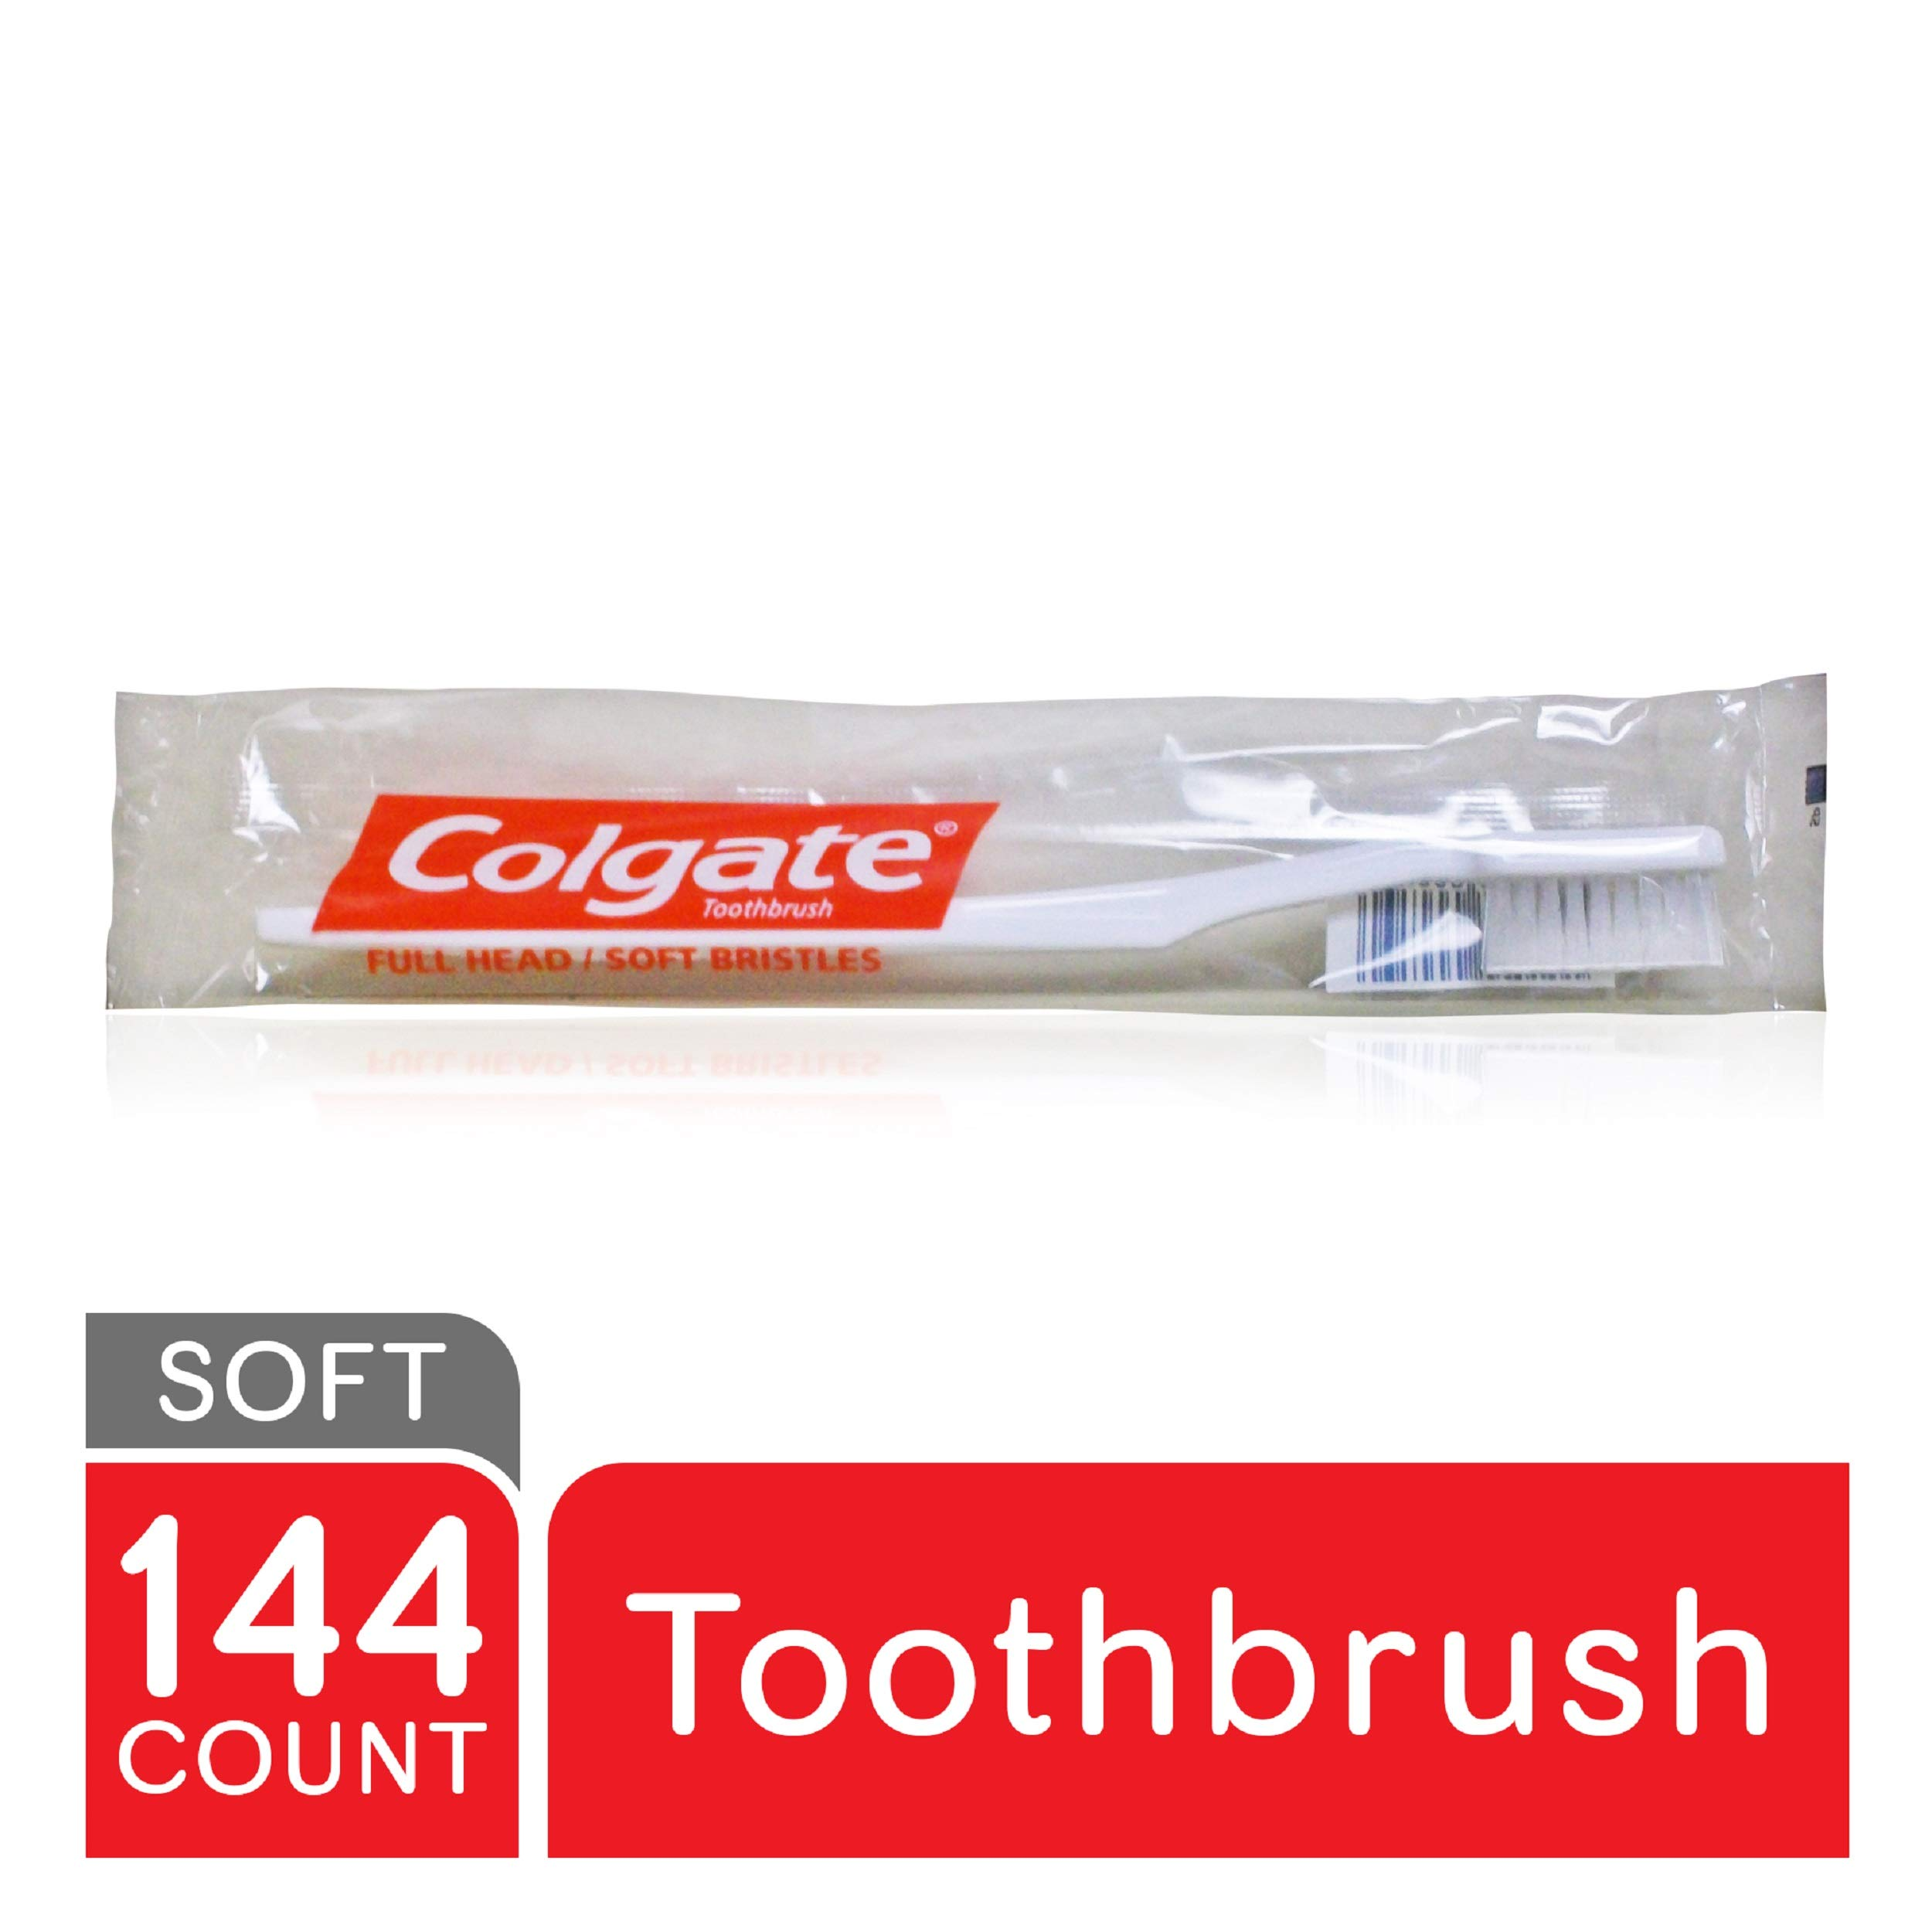 COLGATE Individually Cello-Wrapped Toothbrushes, Soft Toothbrush, Bulk Toothbrushes, Travel Toothbrush (Case of 144) (155501) by Colgate